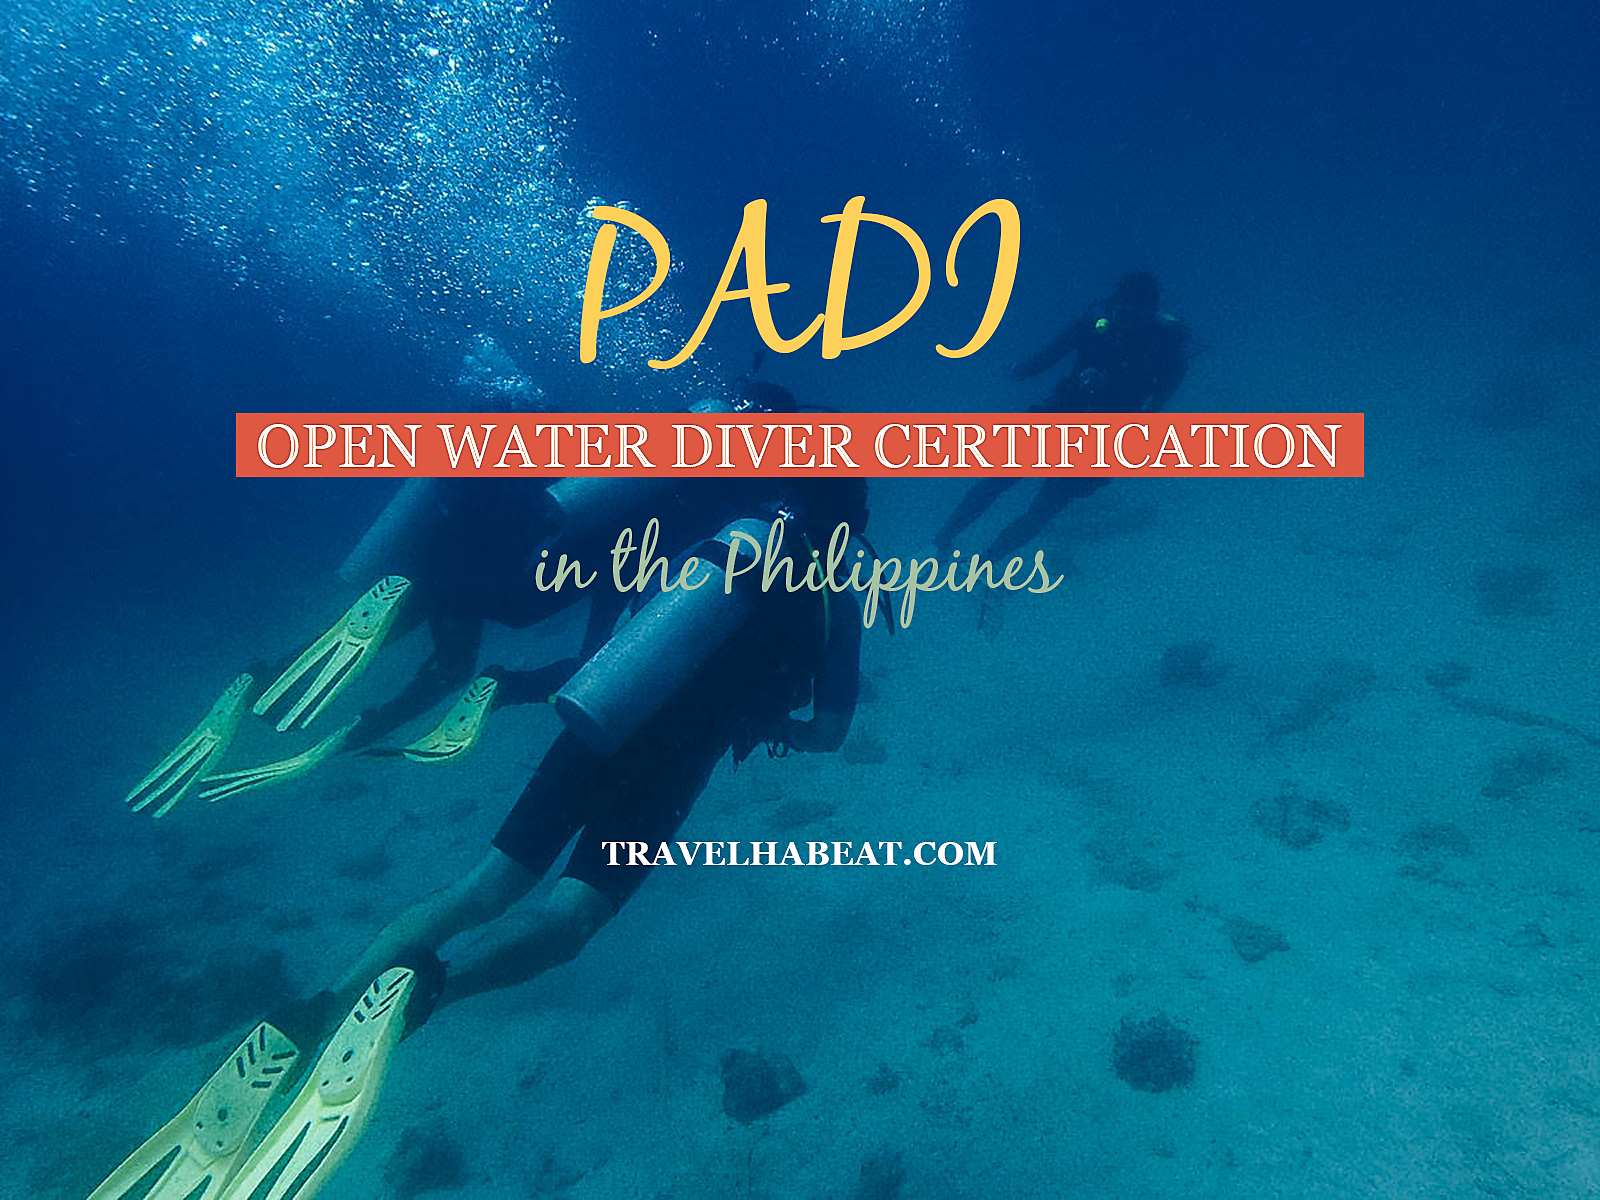 Padi Open Water Diver Certification Travel Habeat